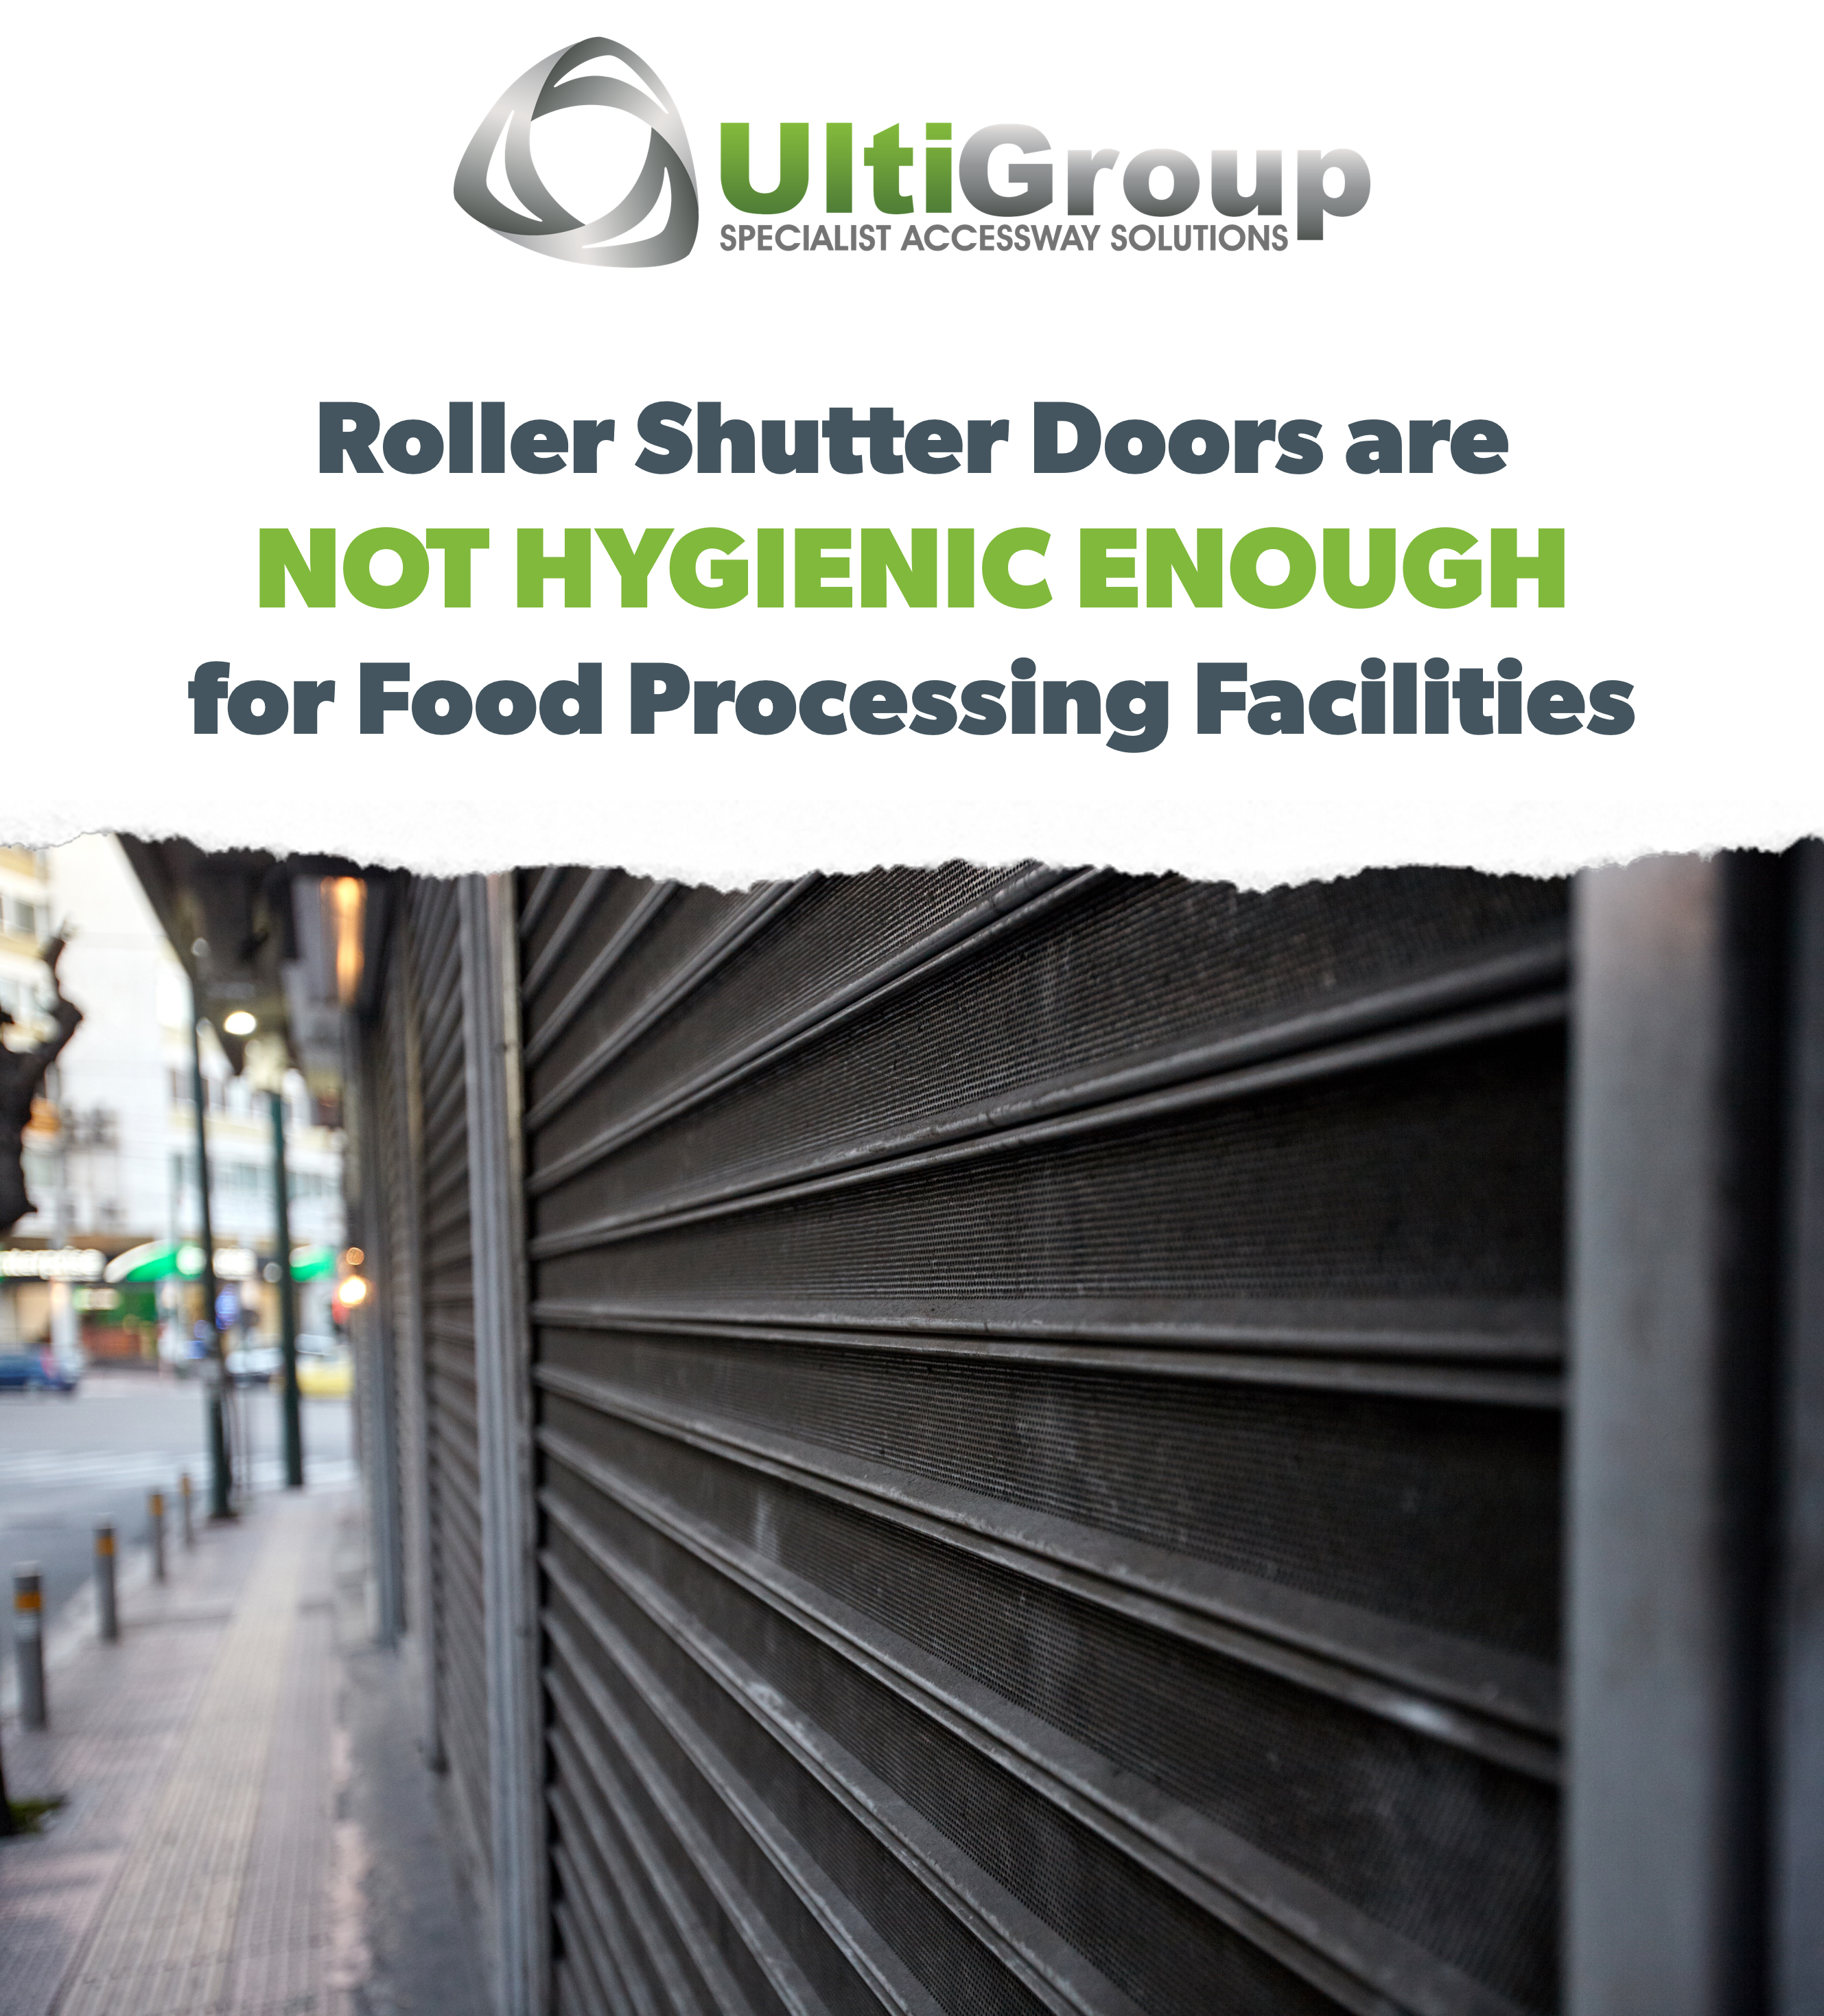 Roller Shutter Doors are not hygienic enough for food processing...here's why!